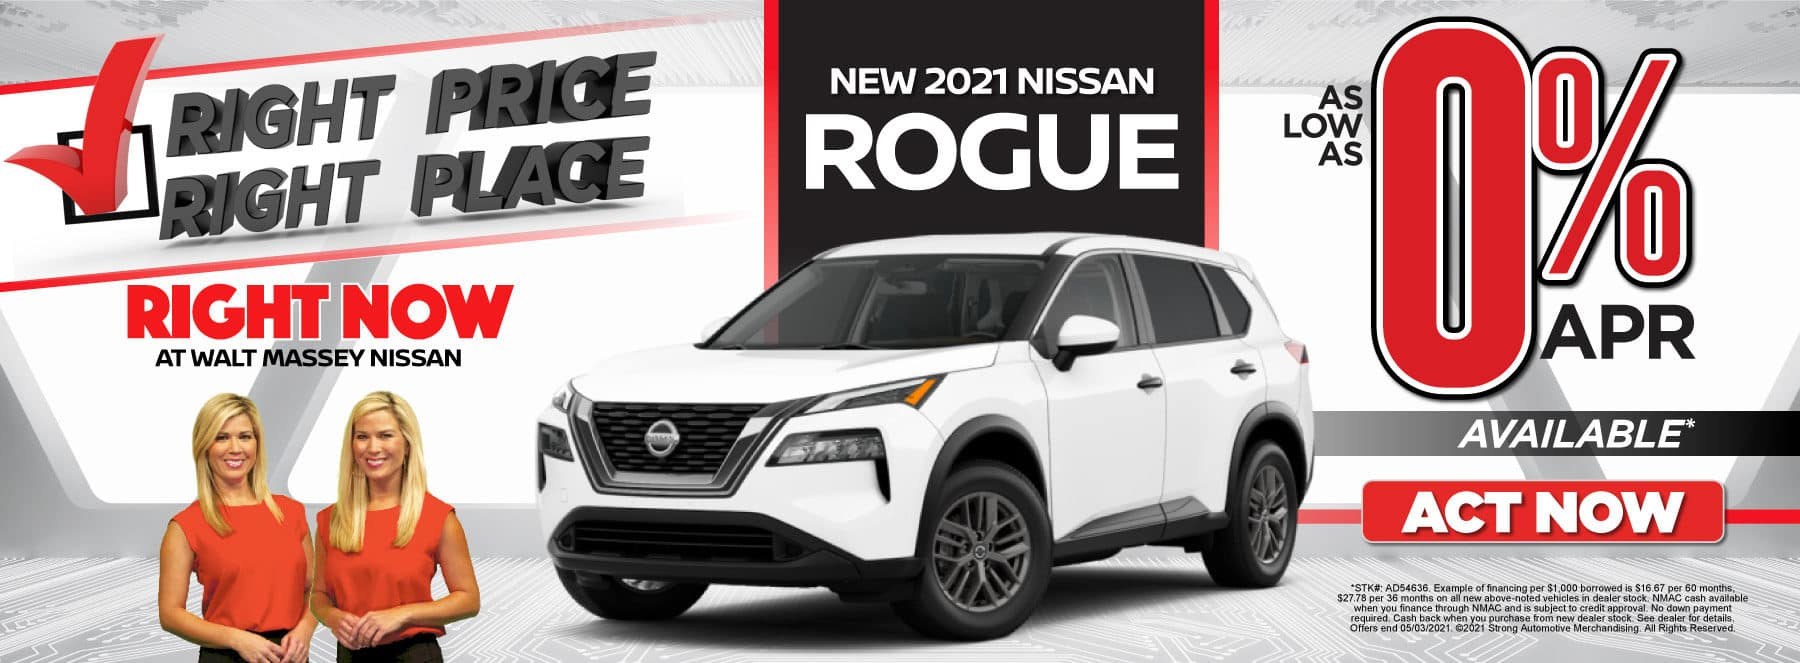 New 2021 Nissan Rogue - As low as 0% APR available - Act Now